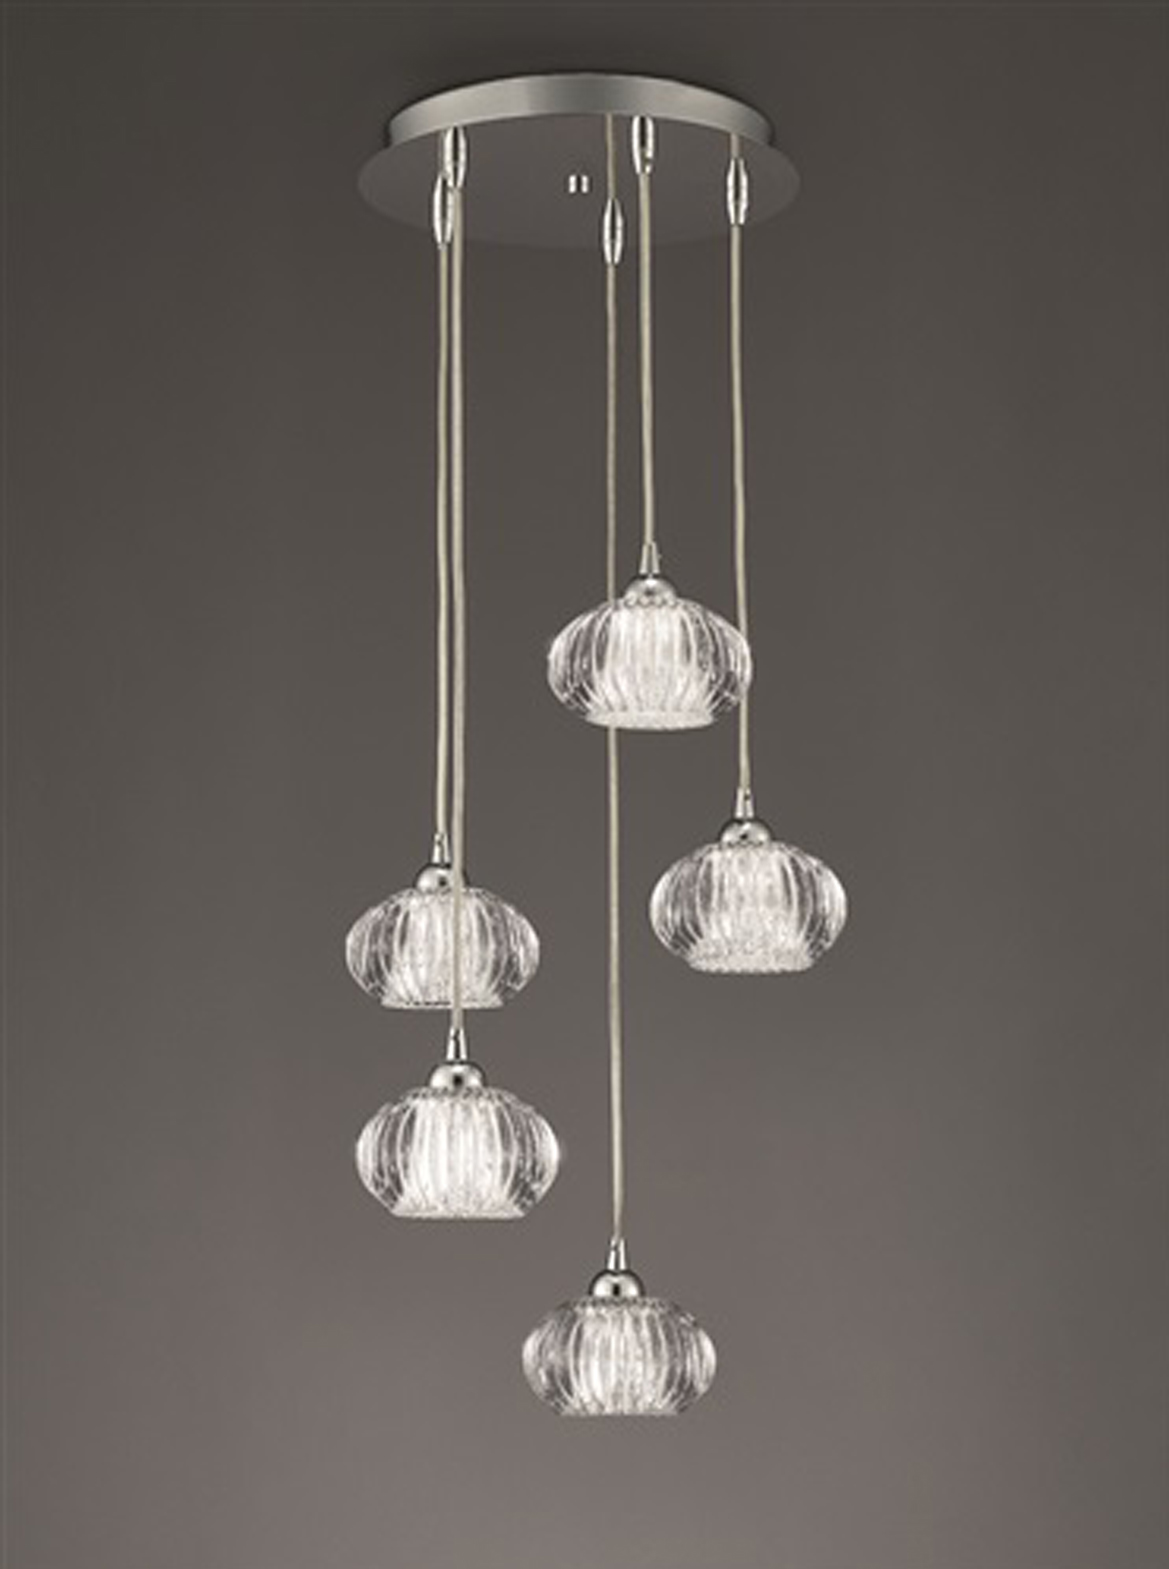 Franklite 39 Tizzy 39 5 Light Ceiling Pendant Chrome FL2344 5 From Easy